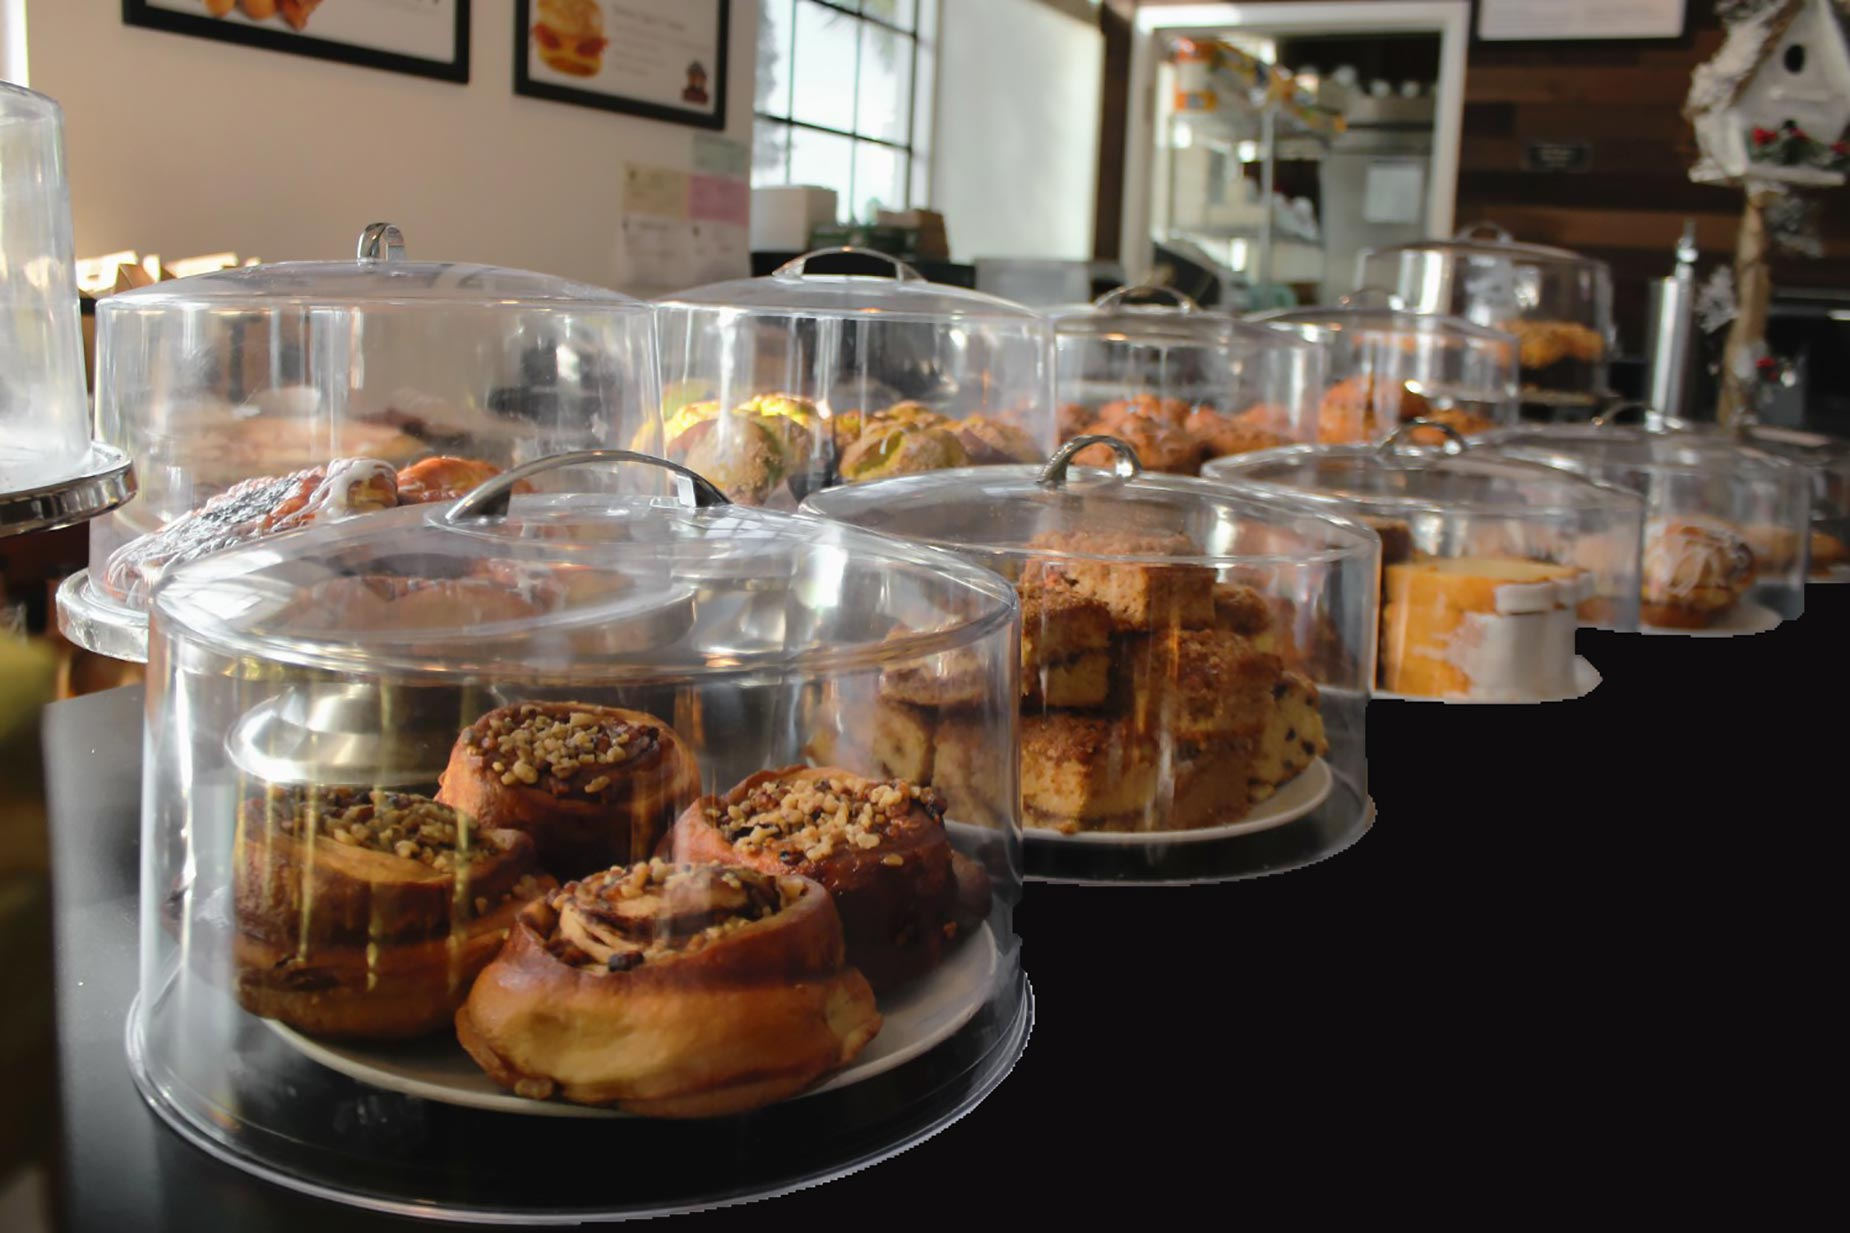 Counter of baked goods at Richard's Fine Coffees in downtown Winter Haven FL